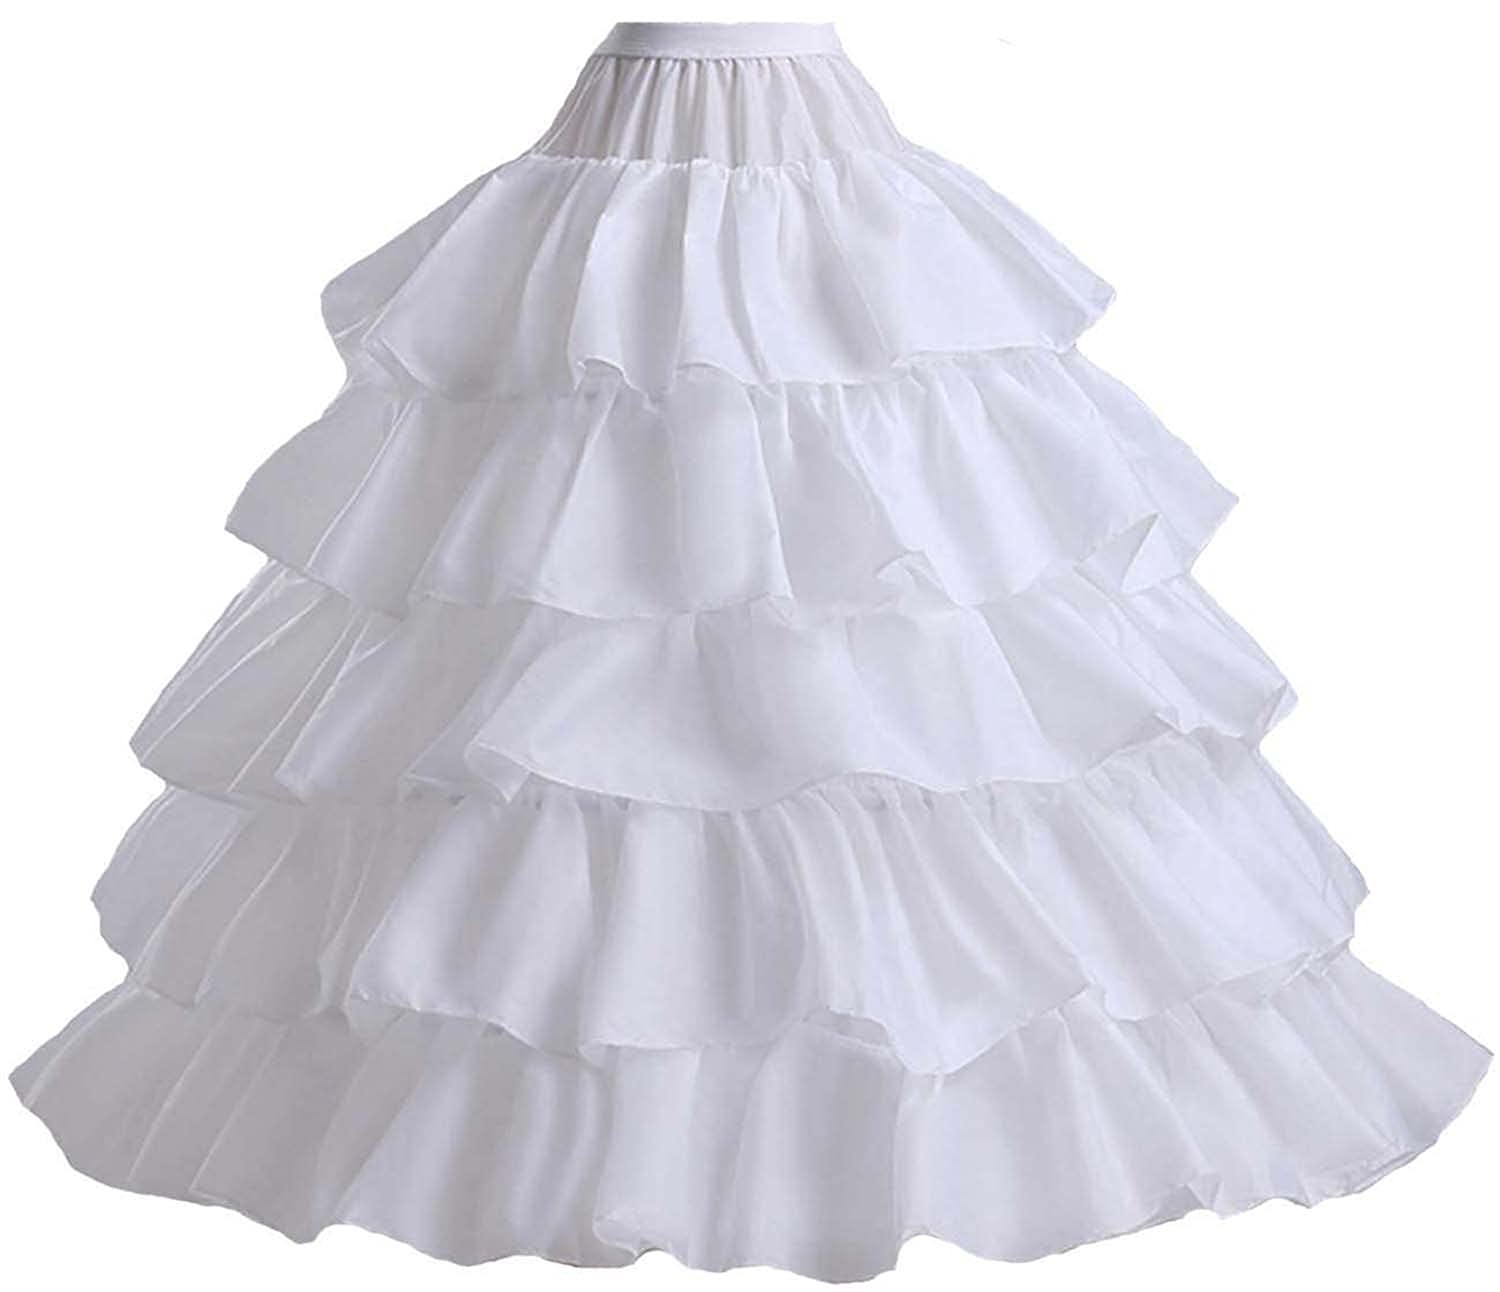 V.C.Formark 5 Slip Ruffles 4 Hoops Petticoat Underskirt for Bridal Wedding Gown Evening Dress VC-PSCQ-JCH-002-WH0F